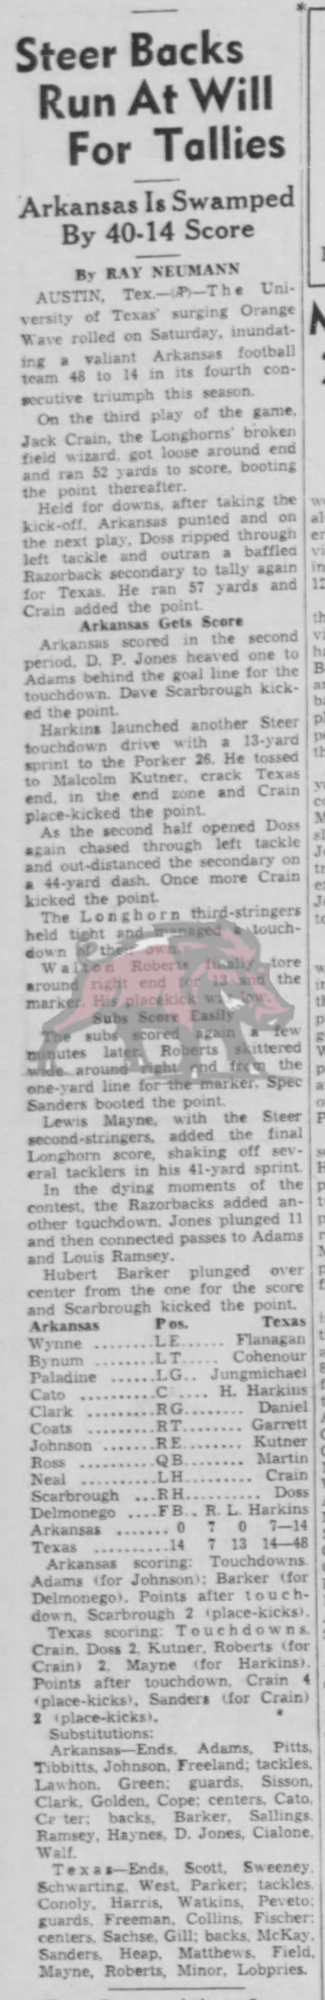 1941-10-19 Valley_Morning_Star_Sun__Oct_19__1941 p. 10 Story Game 23